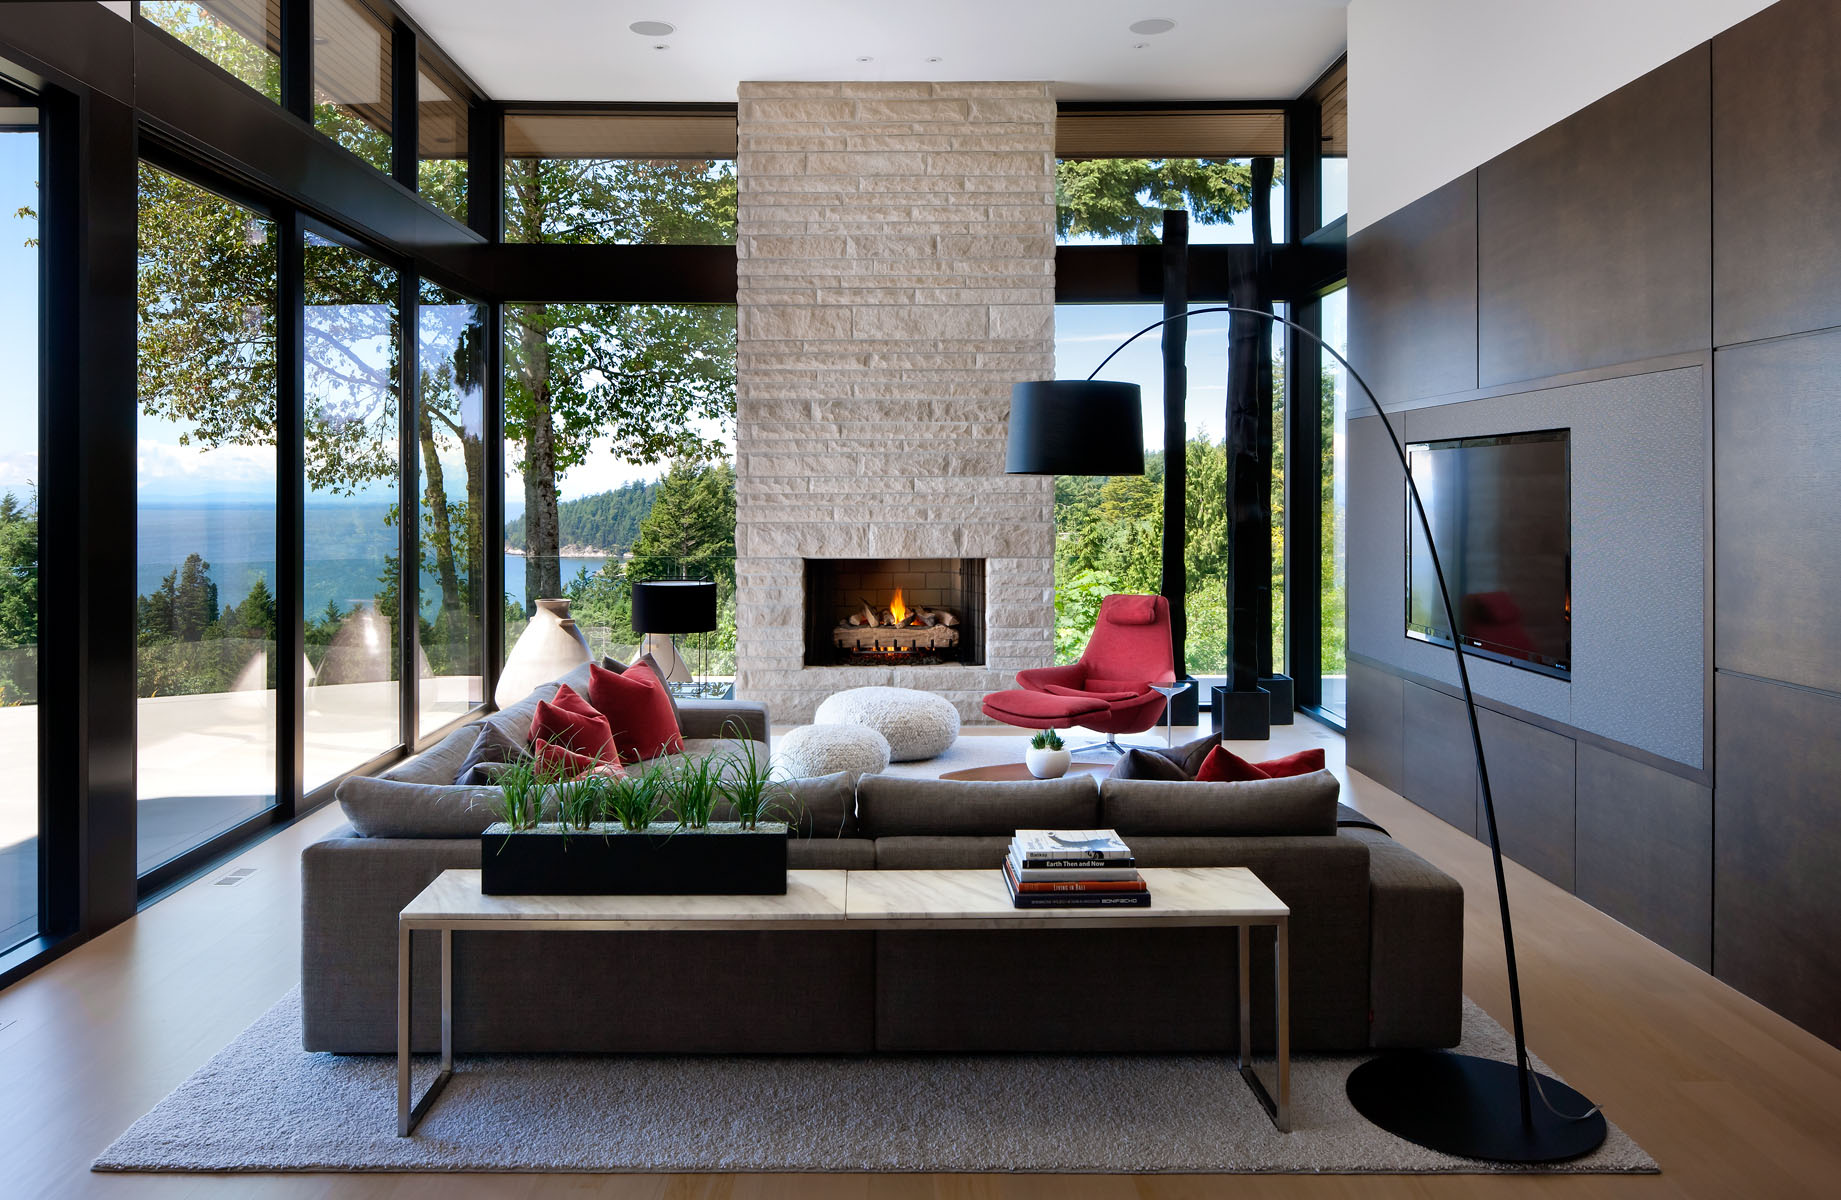 Burkehill Residence by Craig Chevalier and Raven Inside Interior ...